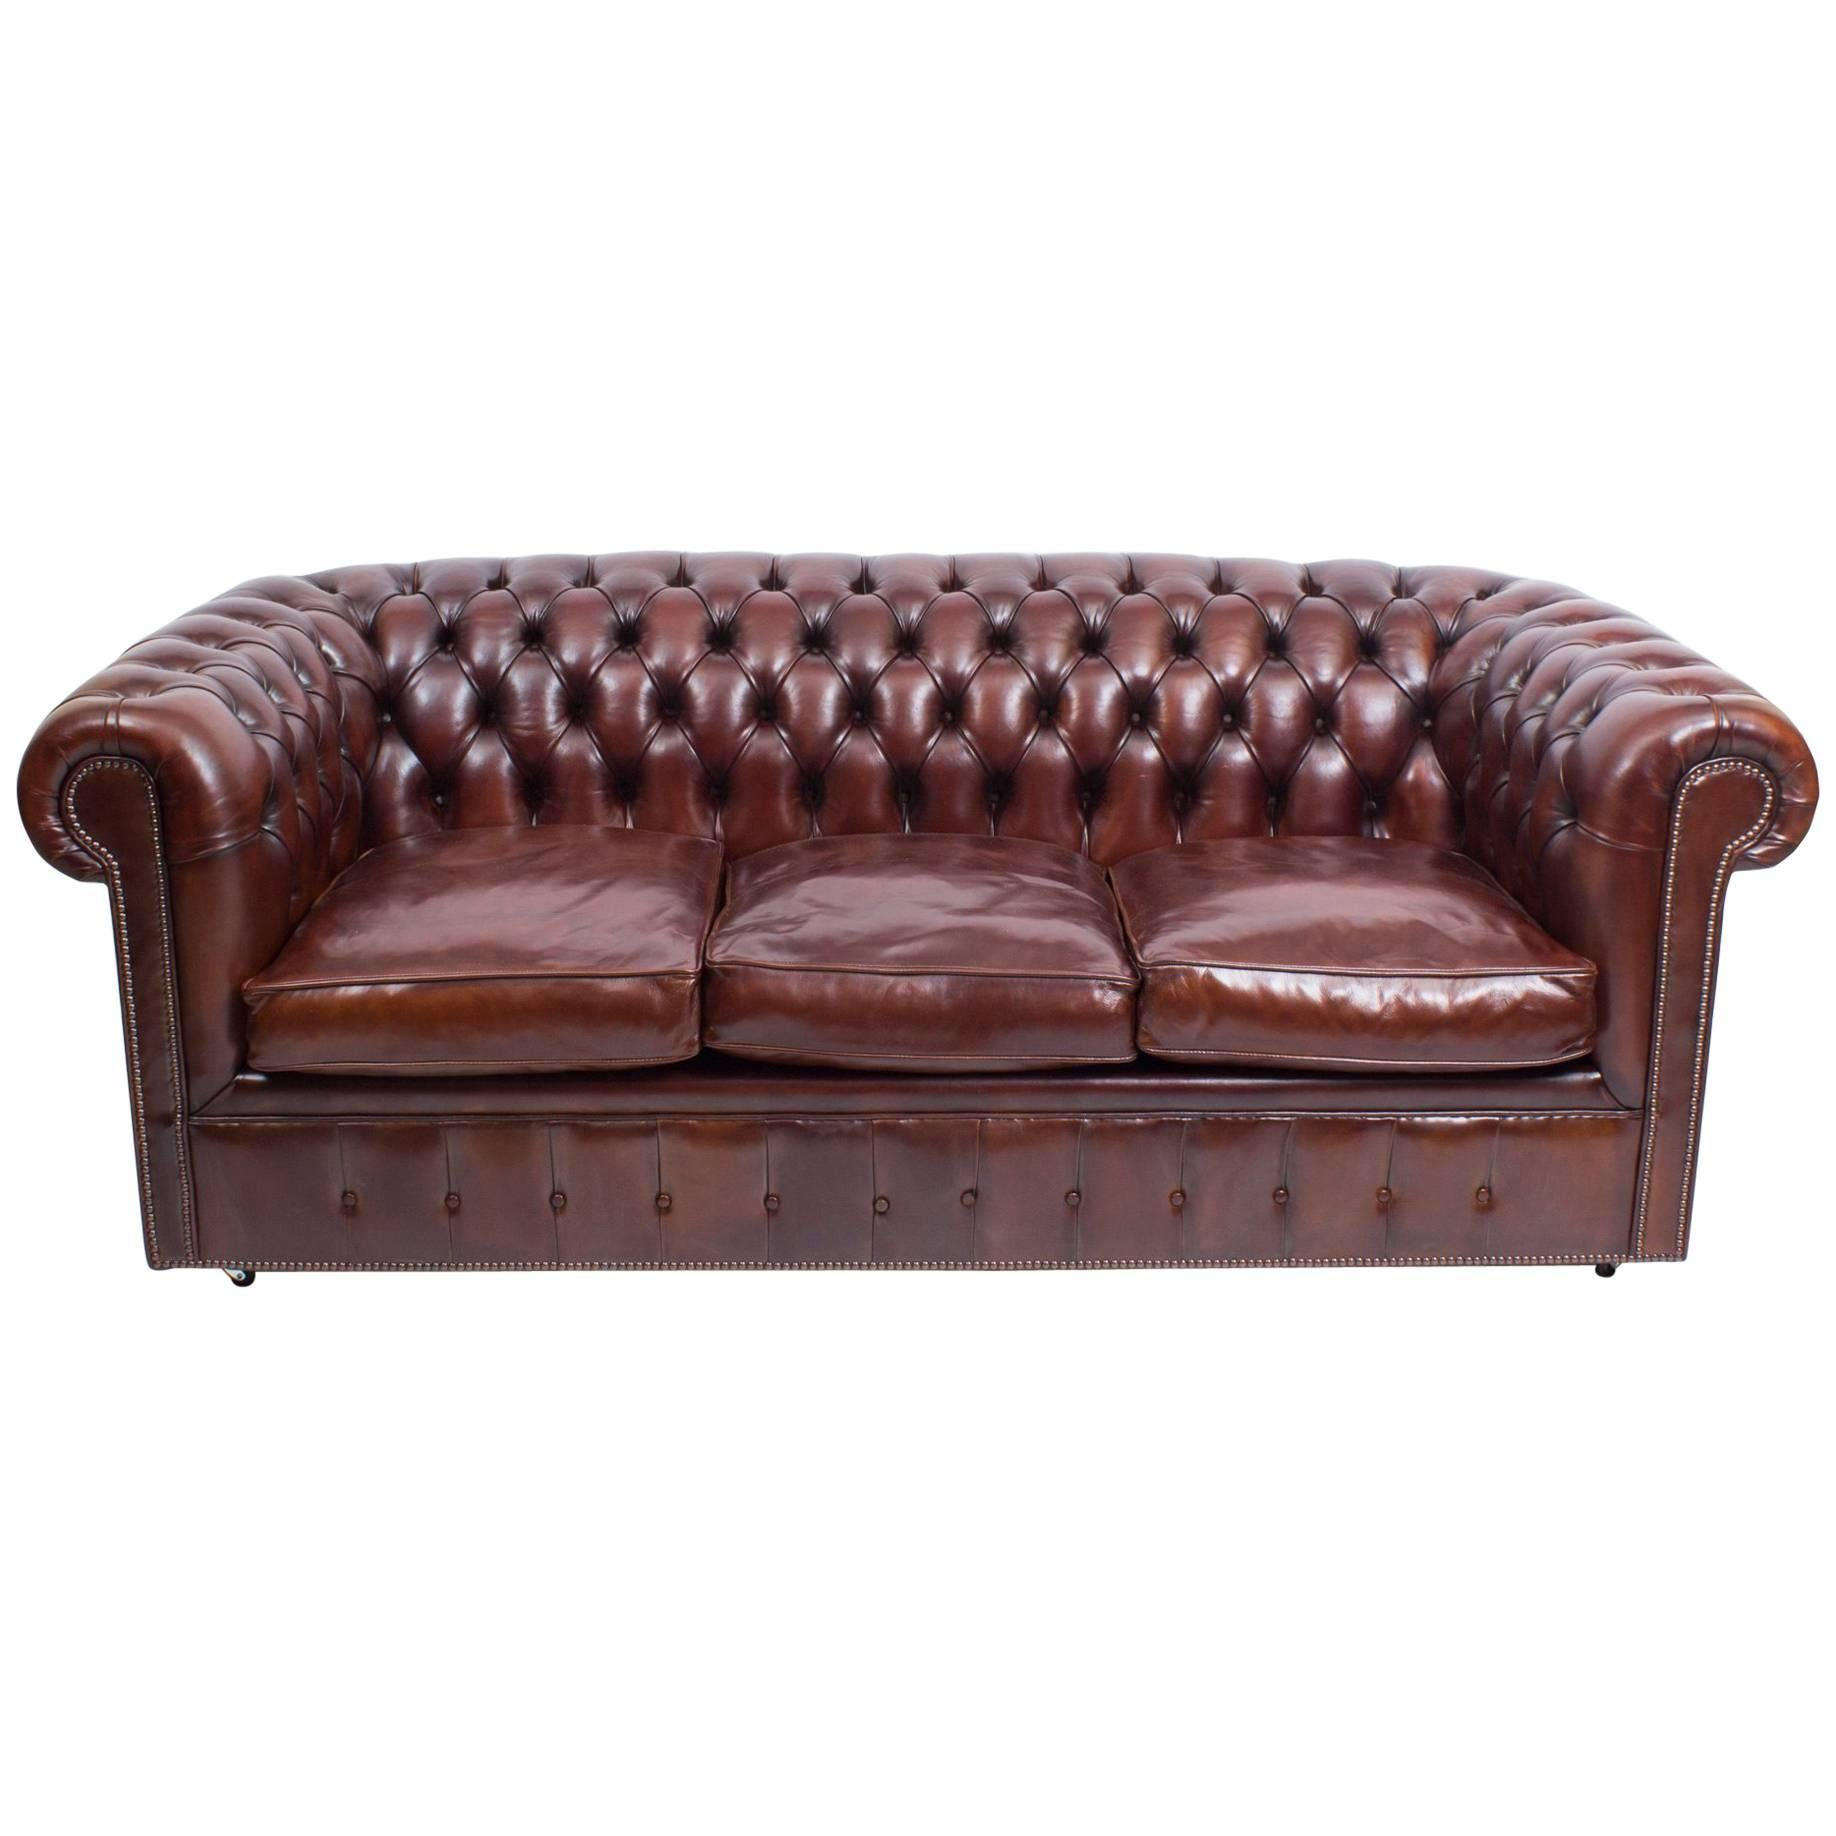 Leather Bespoke Bbo Bed Chesterfield English Sofa N8XwkZOn0P